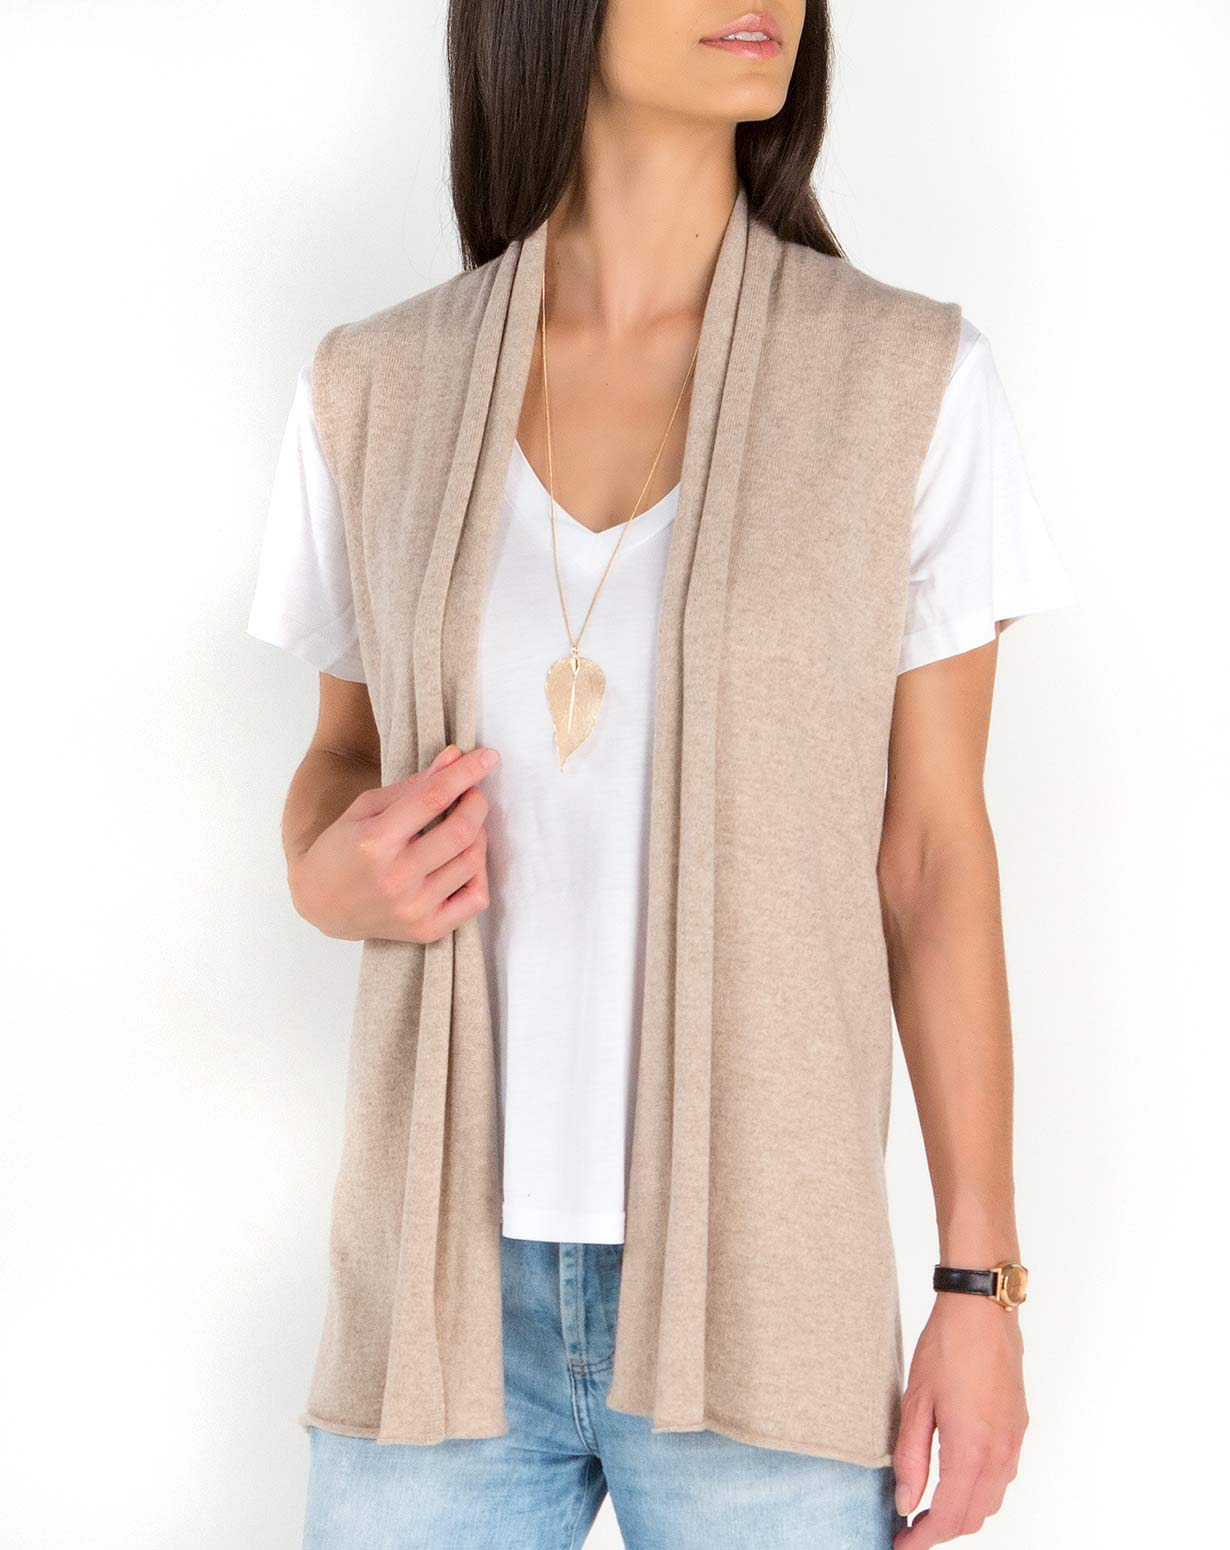 Gilet Donna Lungo in 100% Cashmere